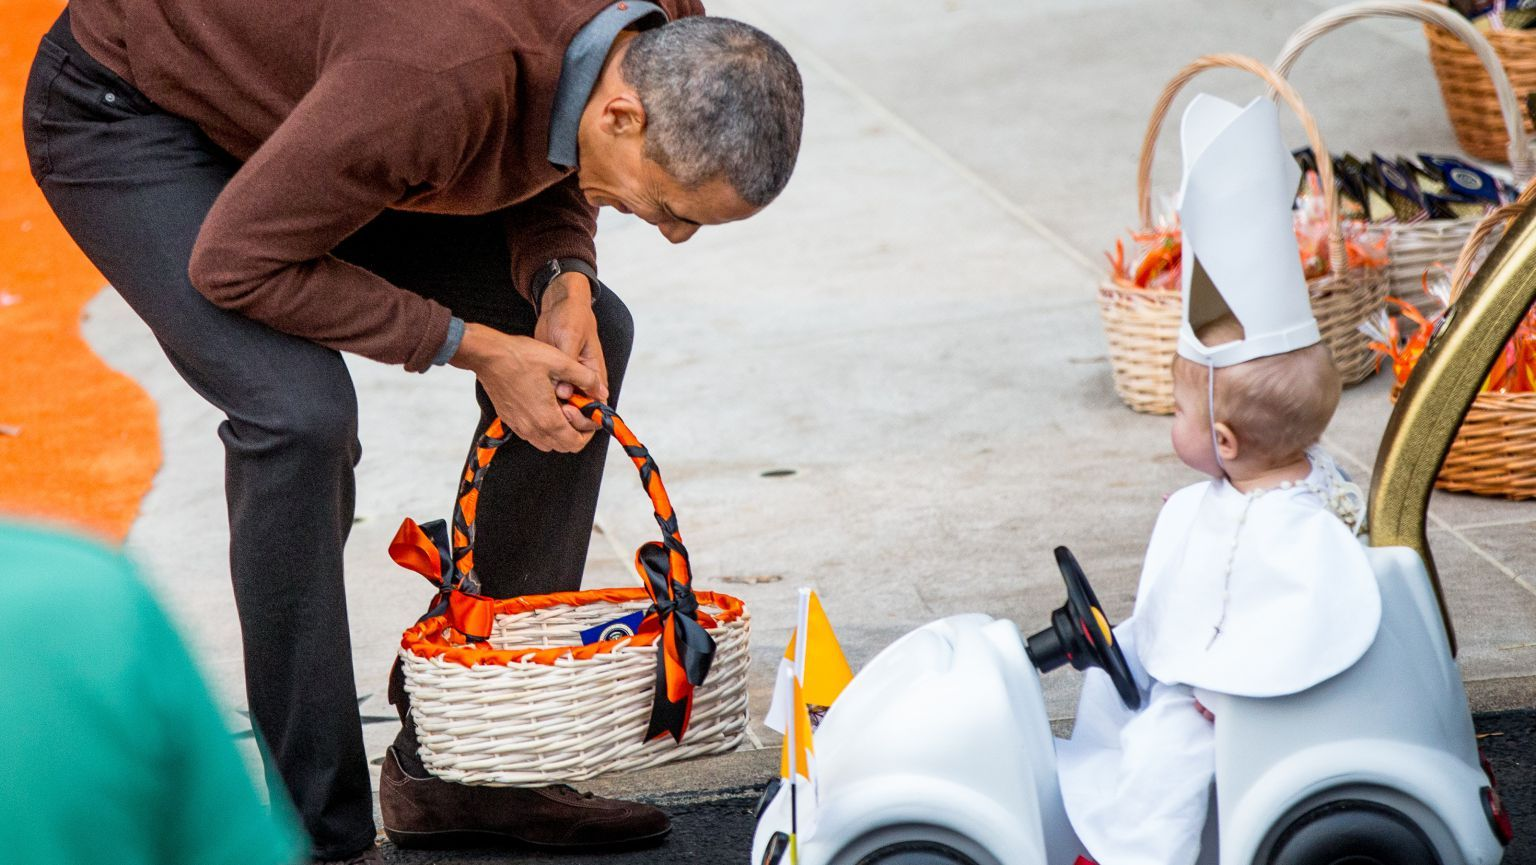 obama lost it when he saw a baby in a pope costume, because who